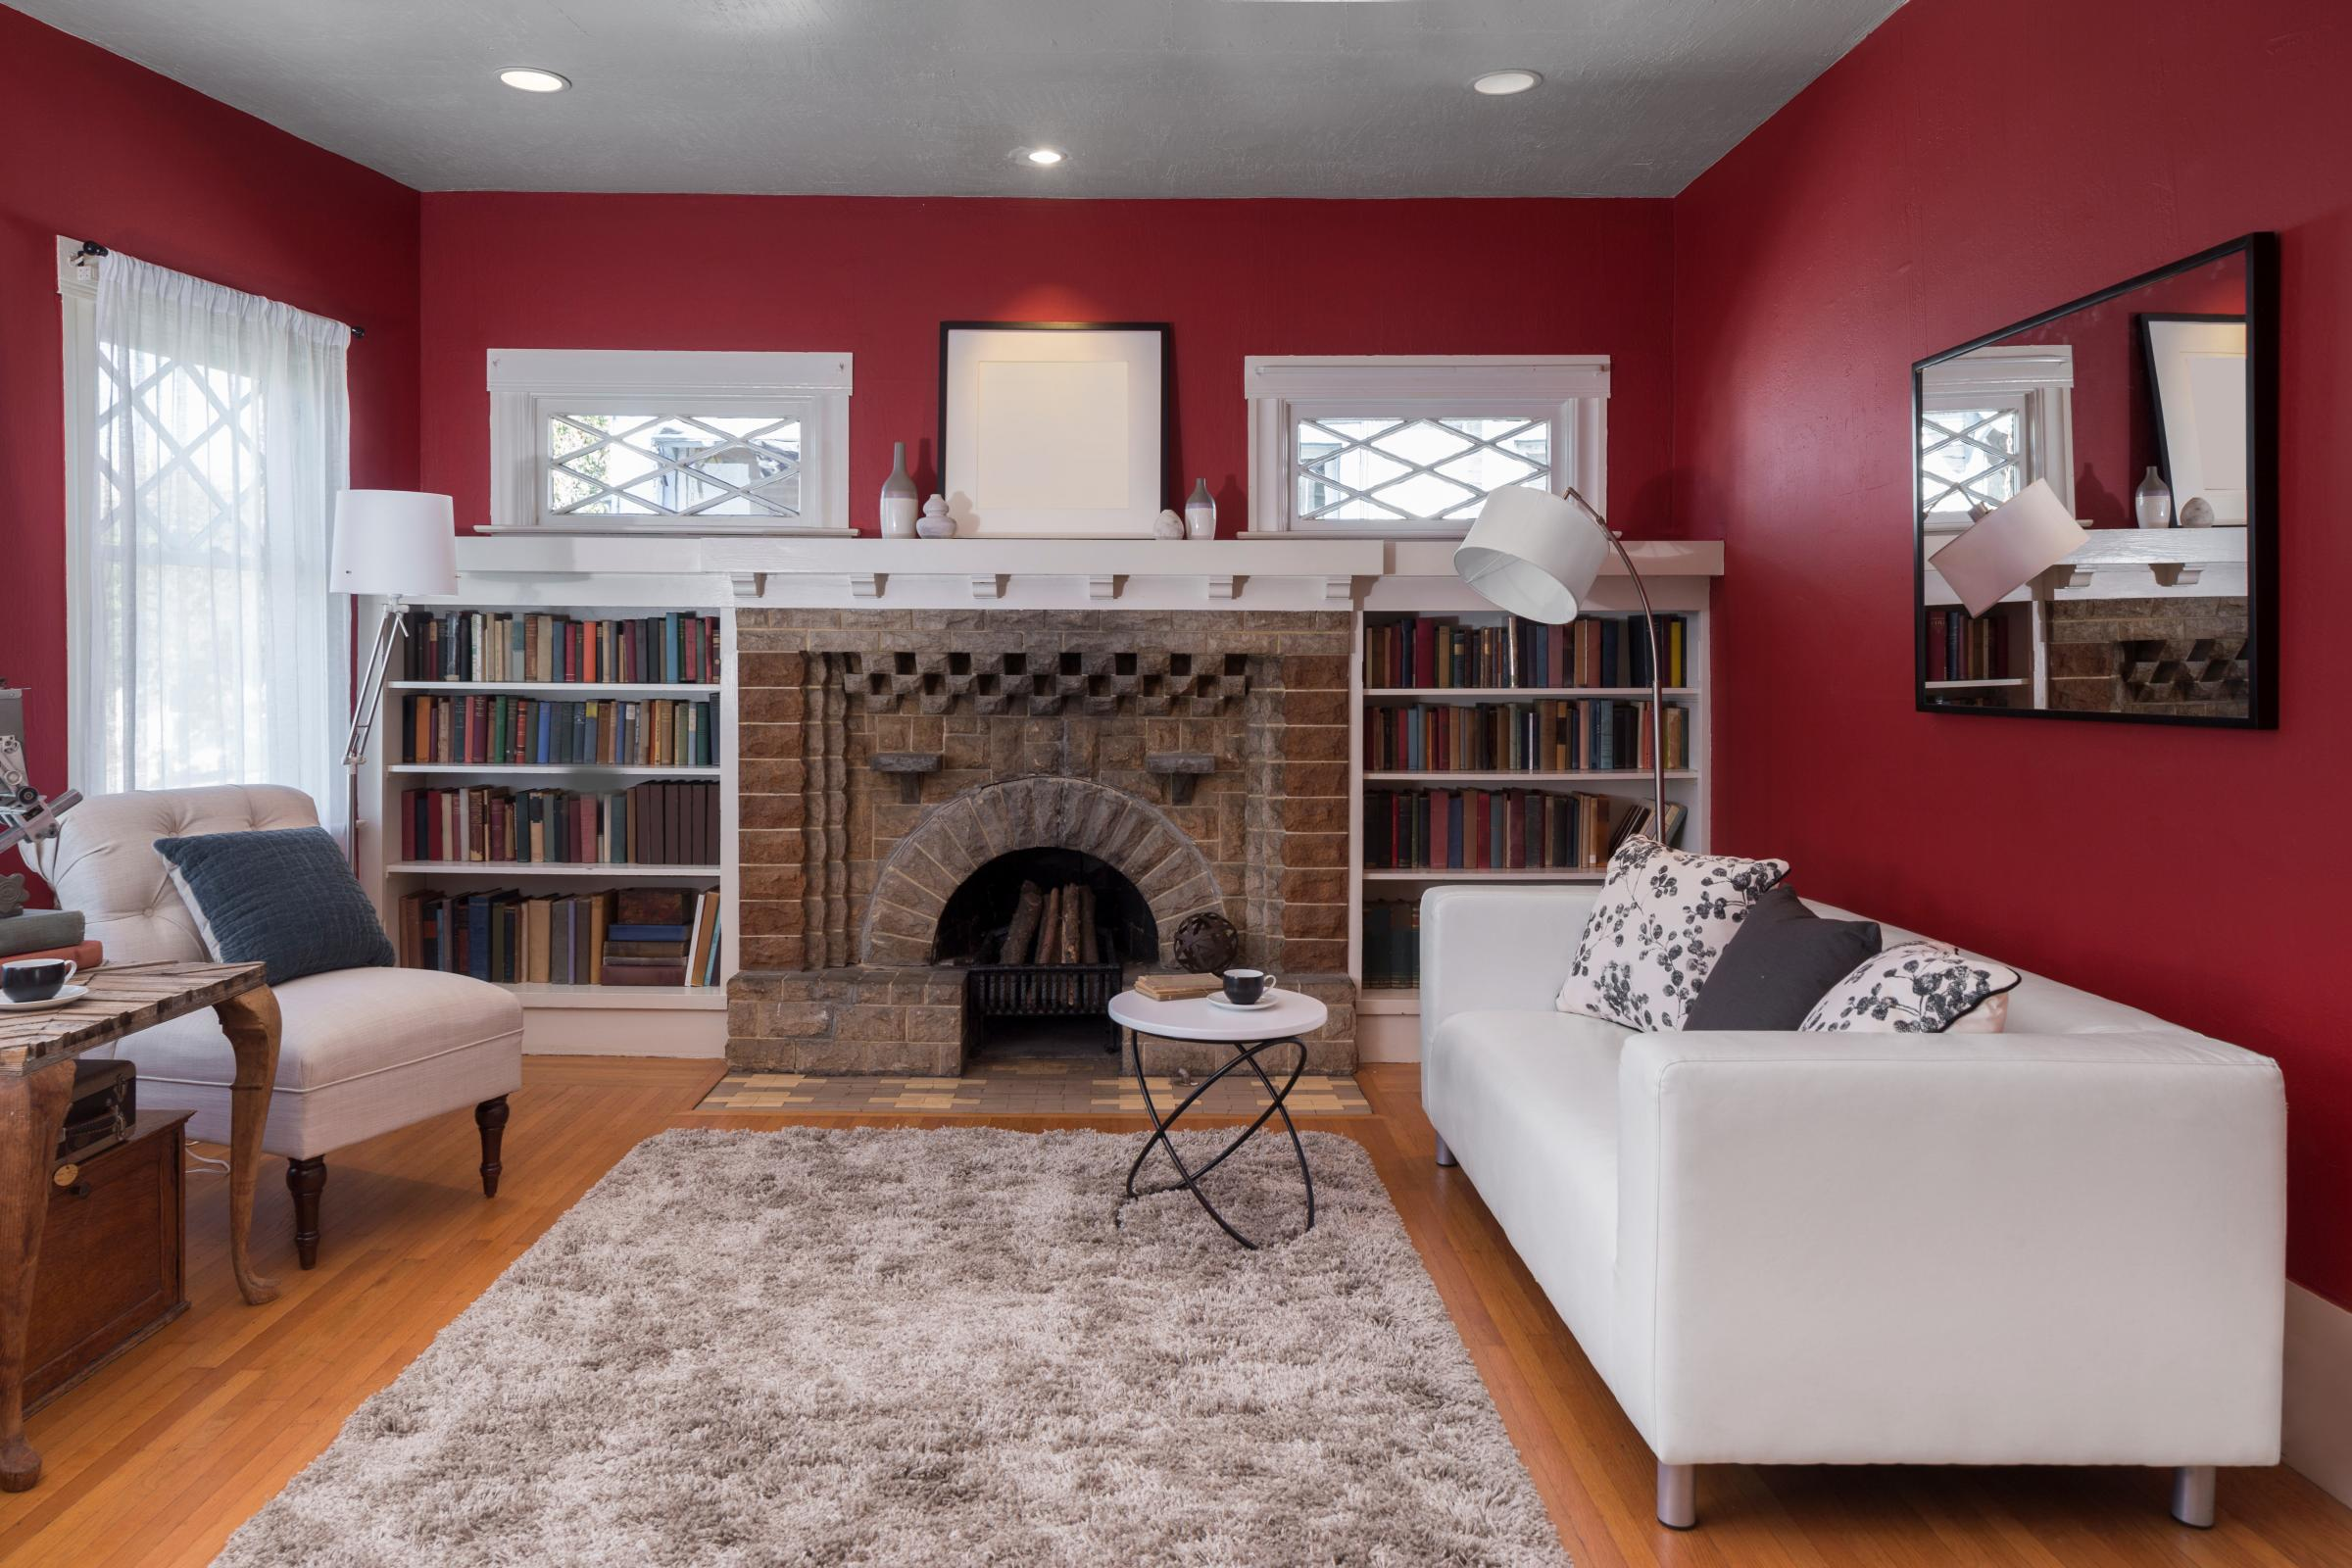 breathe easy 3 ways to increase indoor air quality in your home